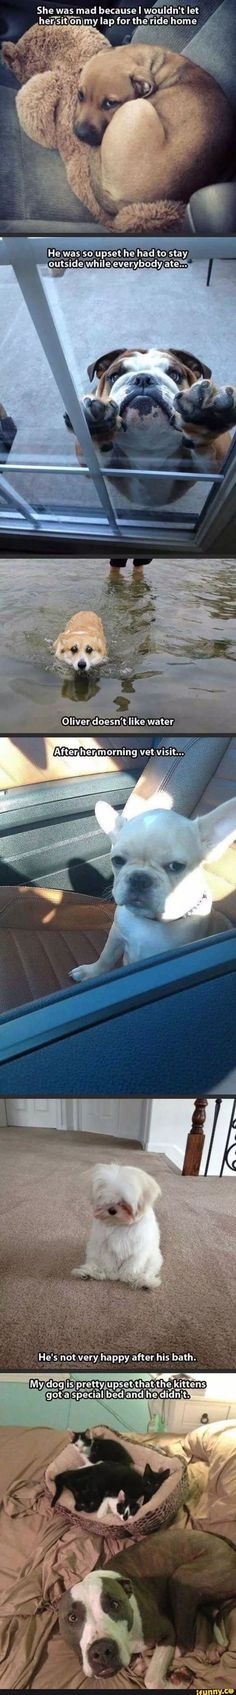 Dogs who are just not having the best day